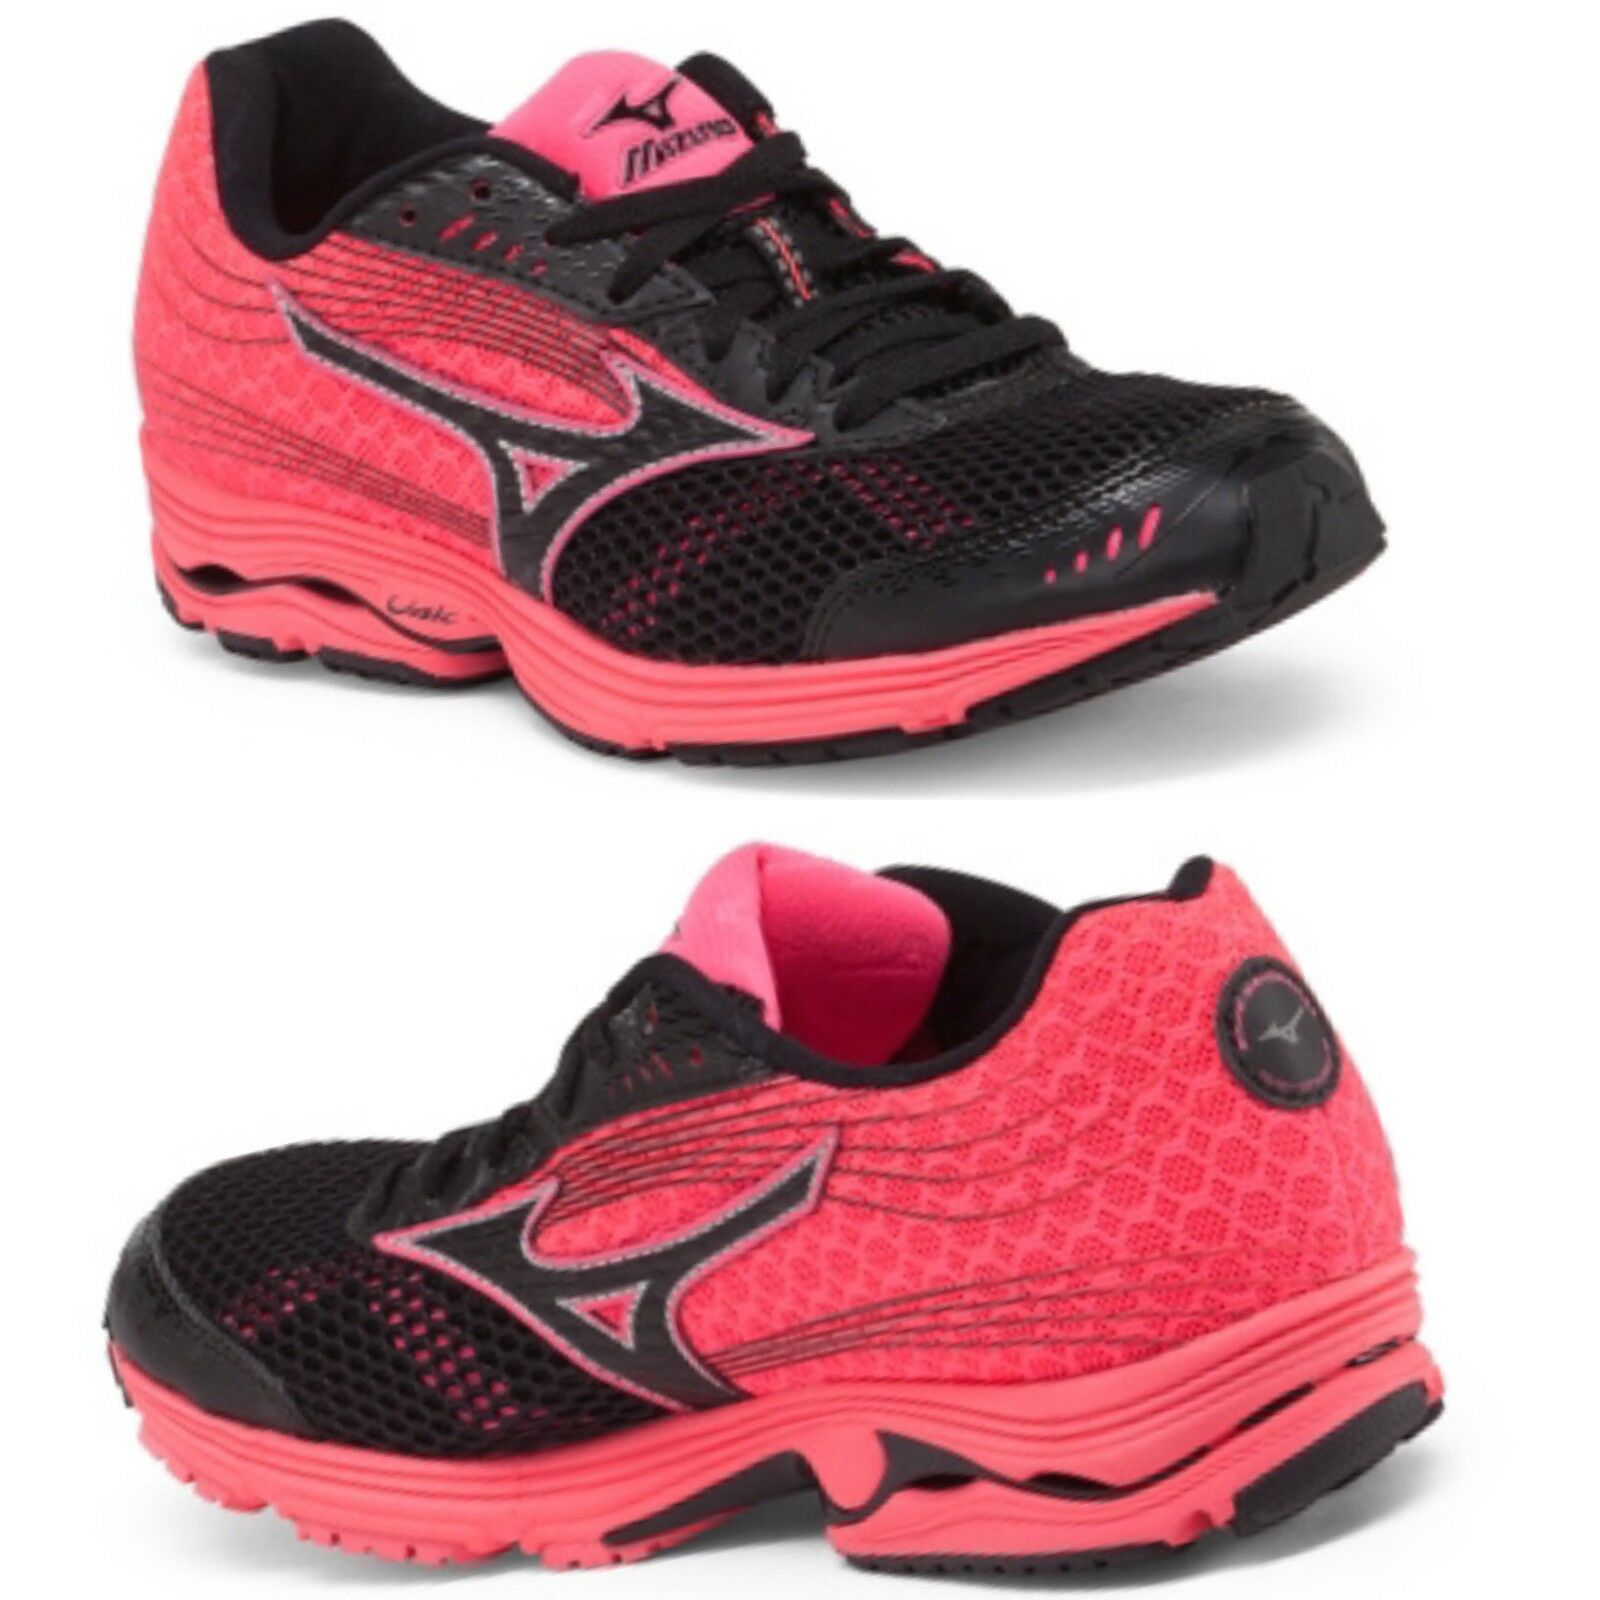 Running Shoes MIZUNO Sayonara BlackNeon Pink BNIB Training Wave Sneakers 3 v8Nmn0w